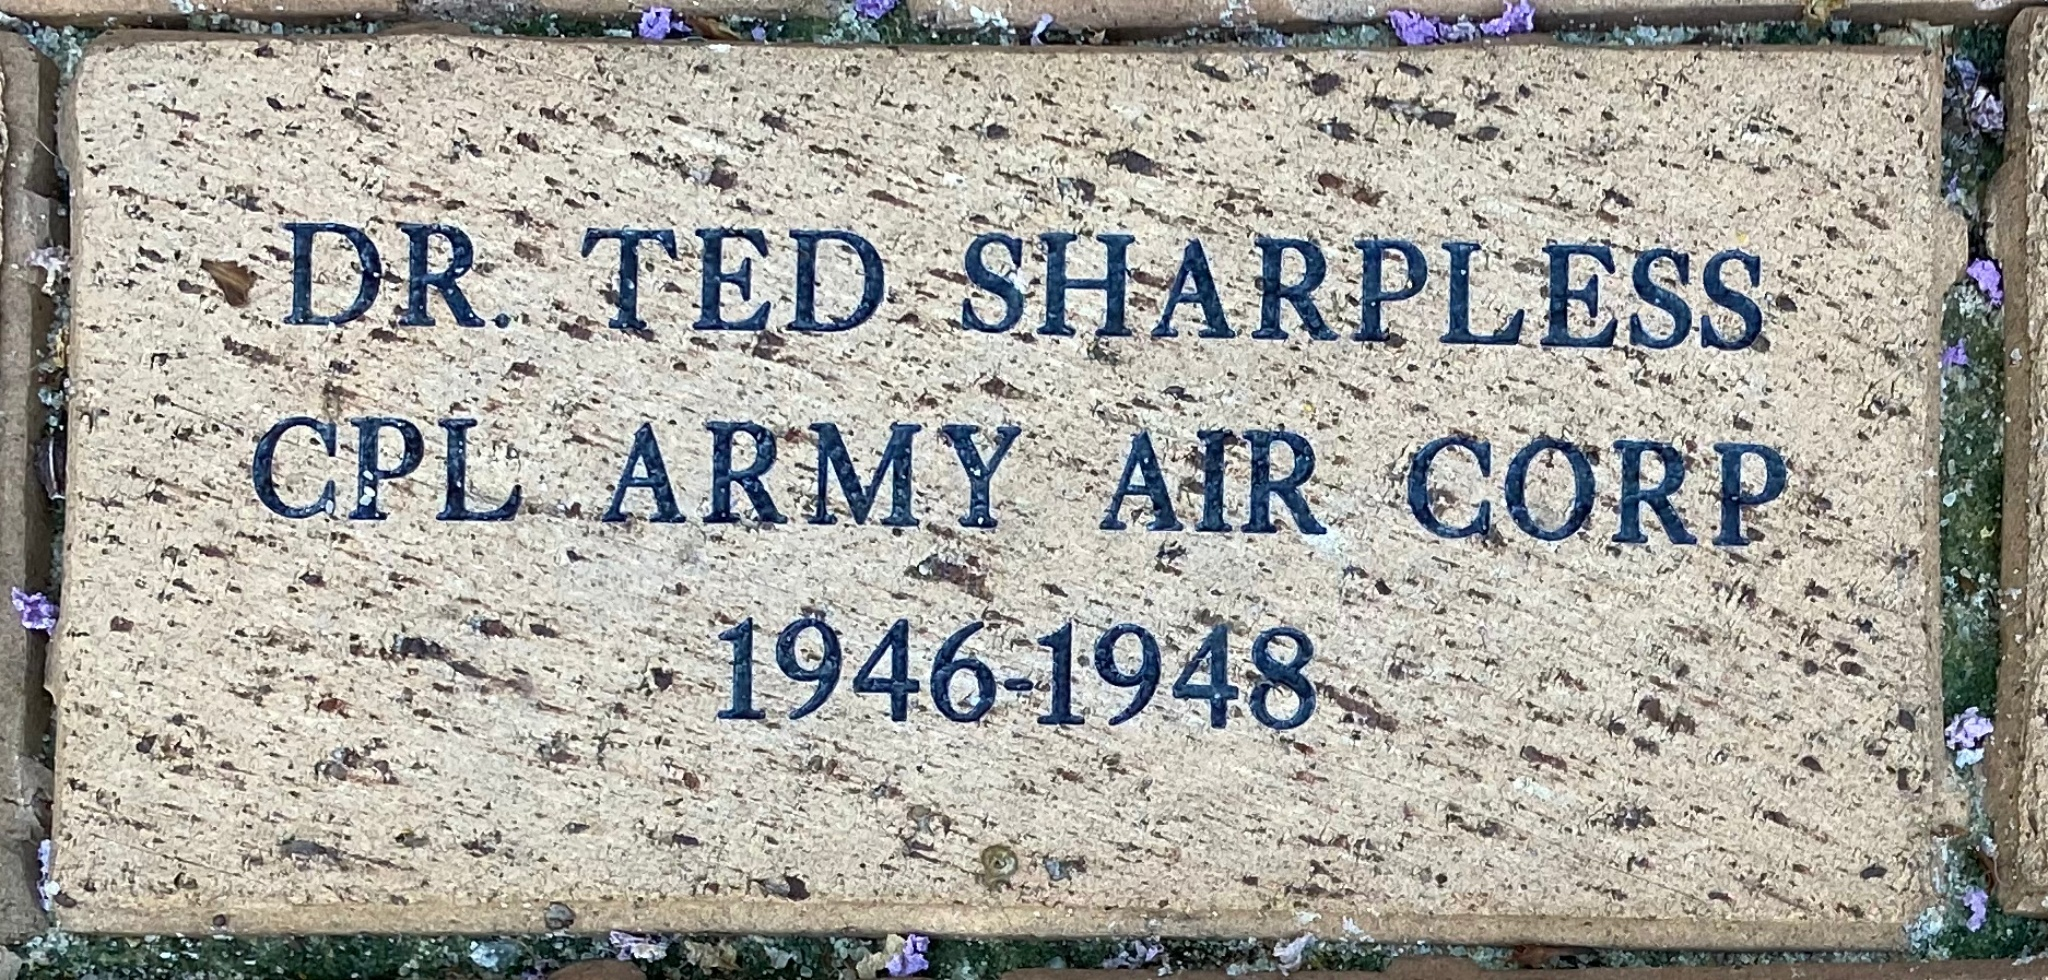 DR. TED SHARPLESS CPL ARMY AIR CORP 1946-1948